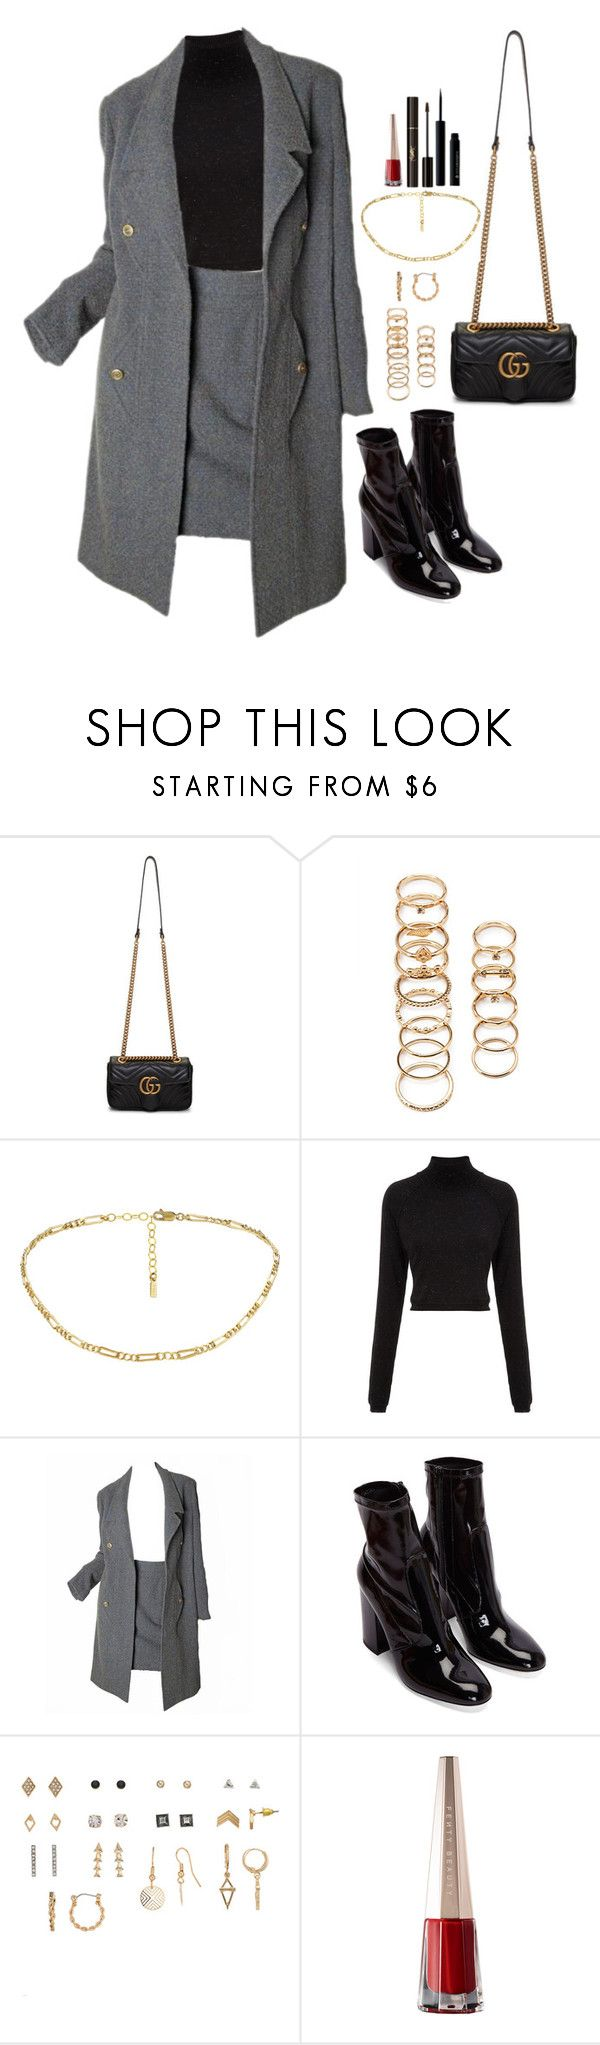 """""""Give us a wink and make me think of you"""" by elo379 ❤ liked on Polyvore featuring Gucci, Forever 21, Whistles, Karl Lagerfeld and Yves Saint Laurent"""